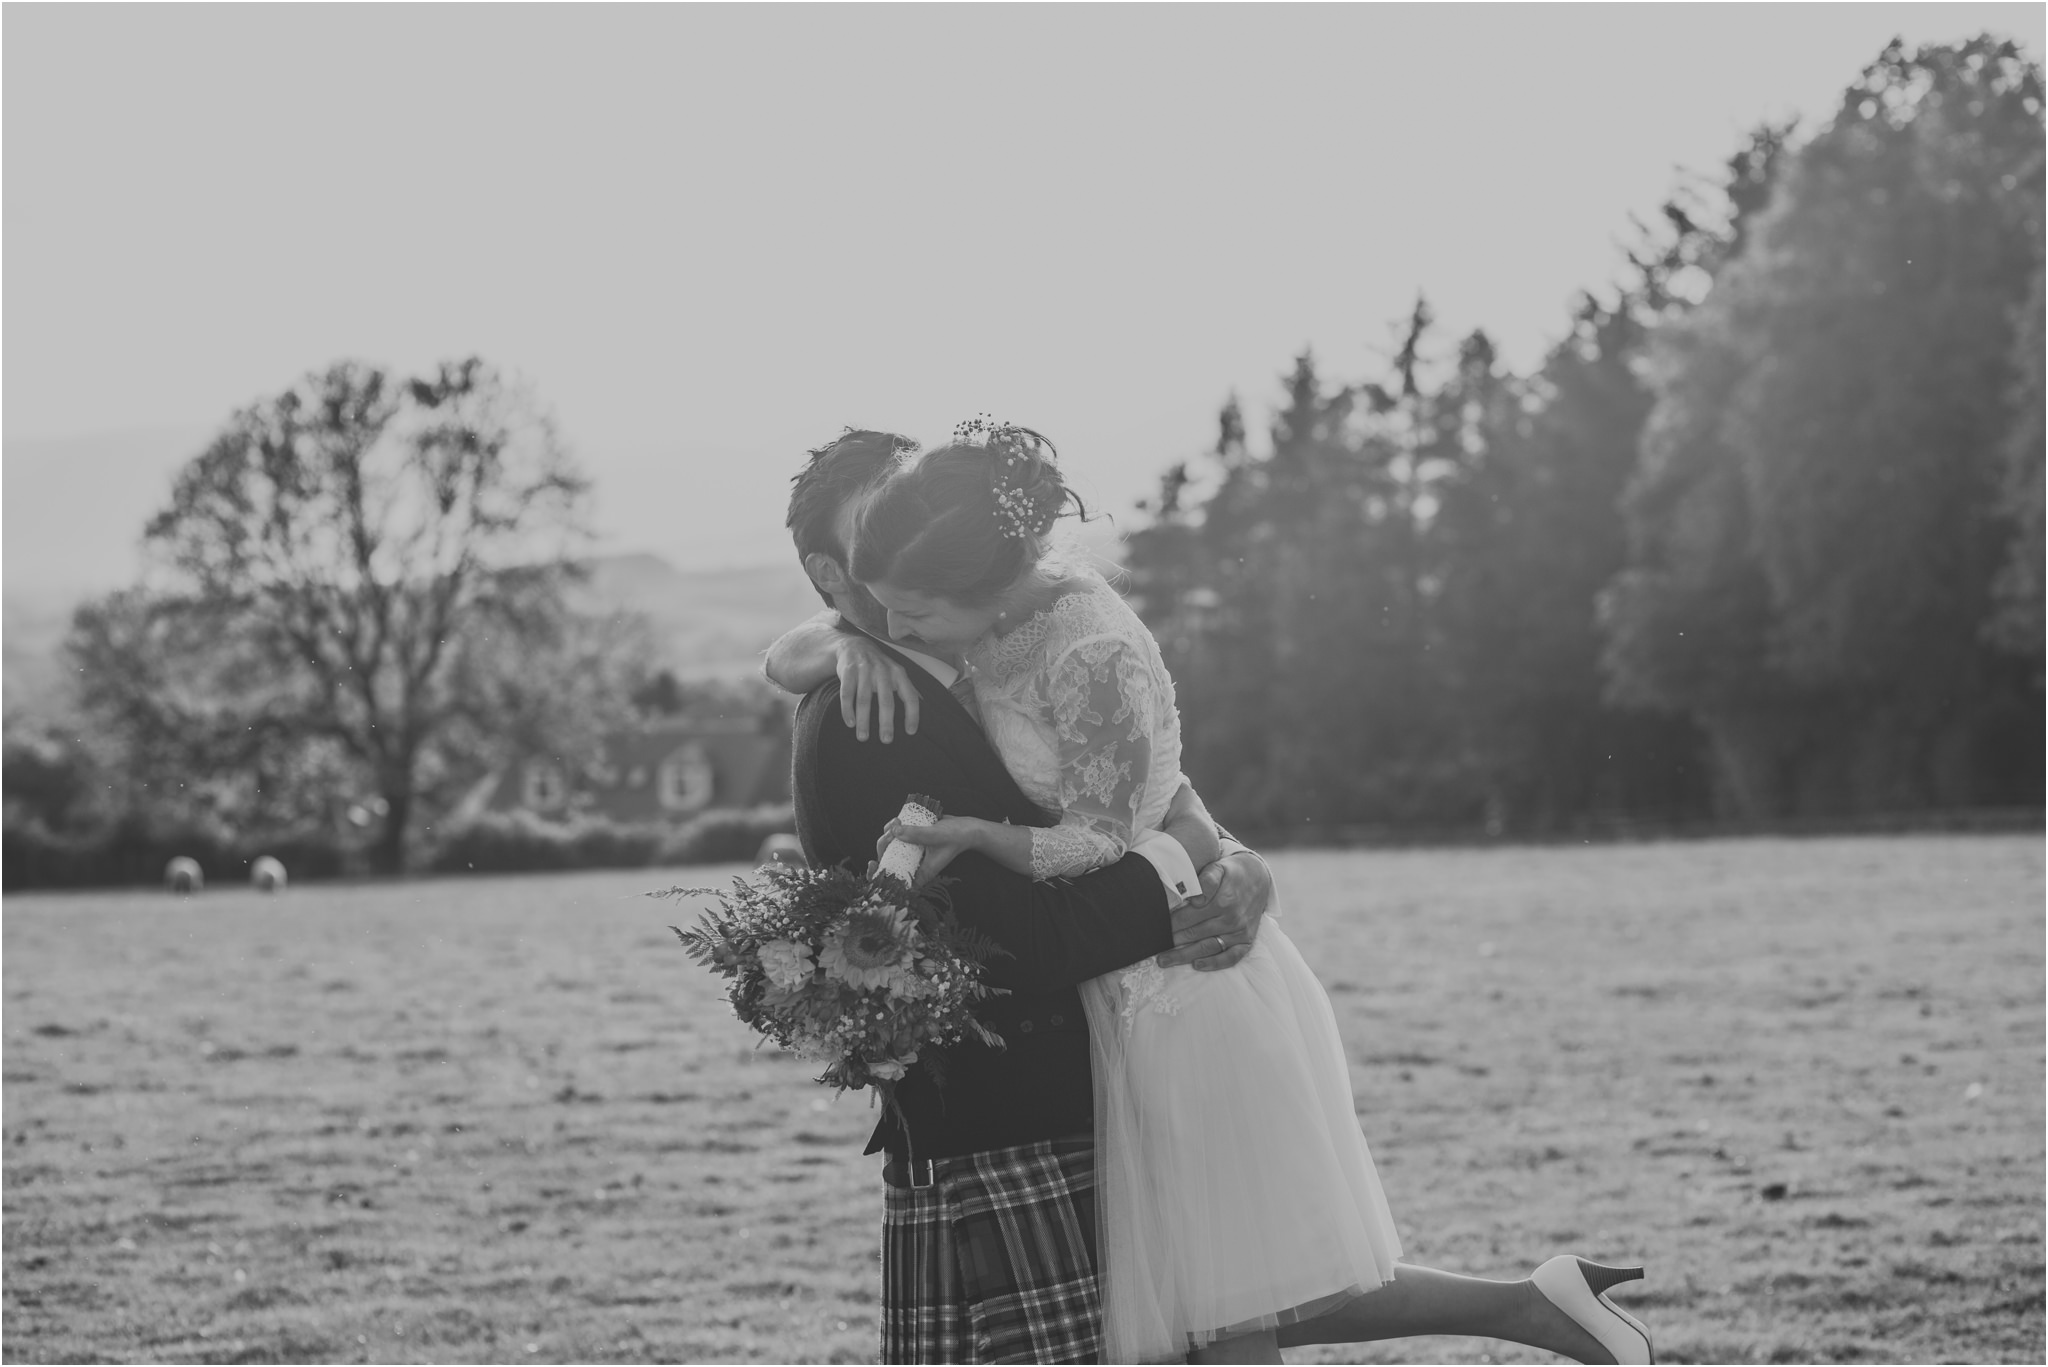 Photography 78 - Glasgow Wedding Photographer - Fraser Thirza - Killearn Village Hall - Three Sisters Bake Wedding_0150.jpg